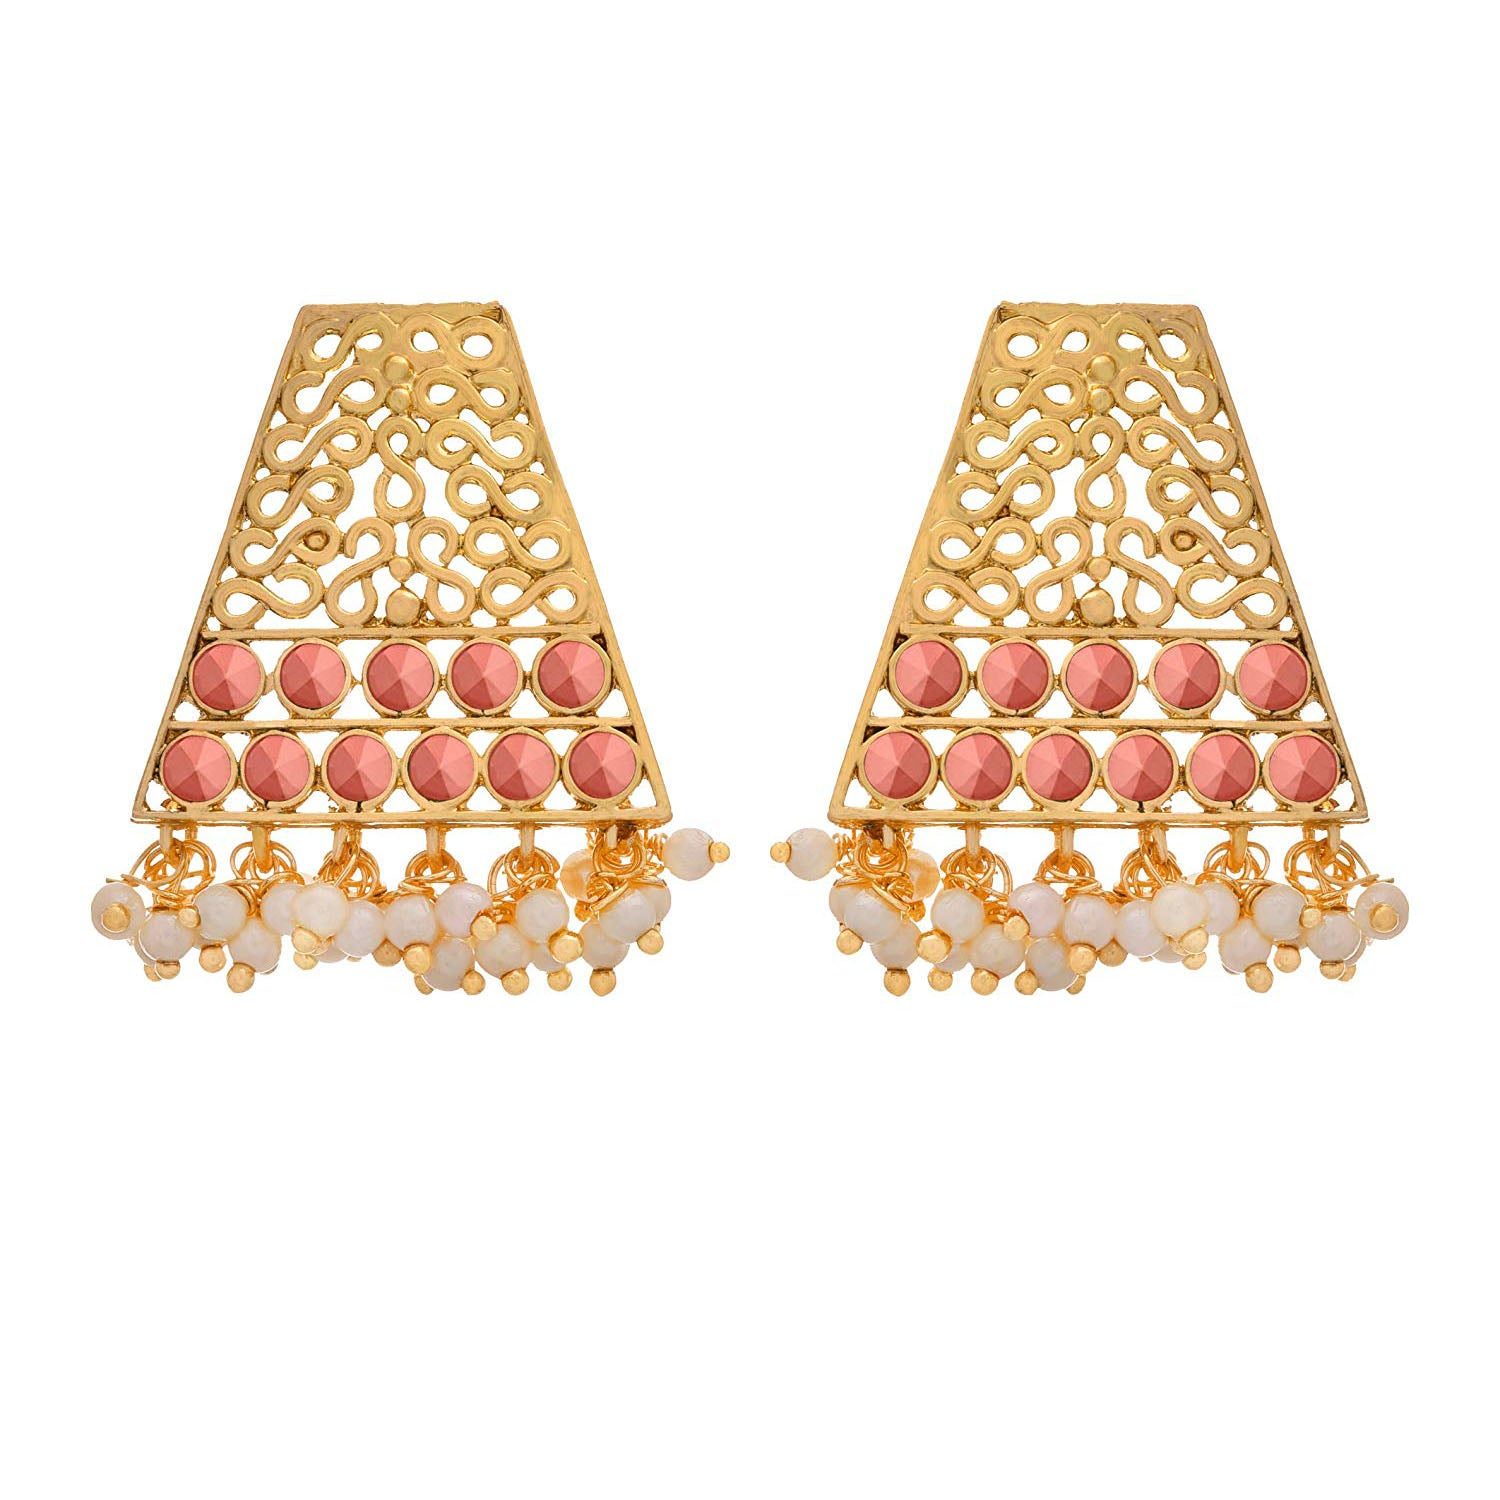 Traditional Ethnic One Gram Gold Plated Designer Earring For Women & Girls.